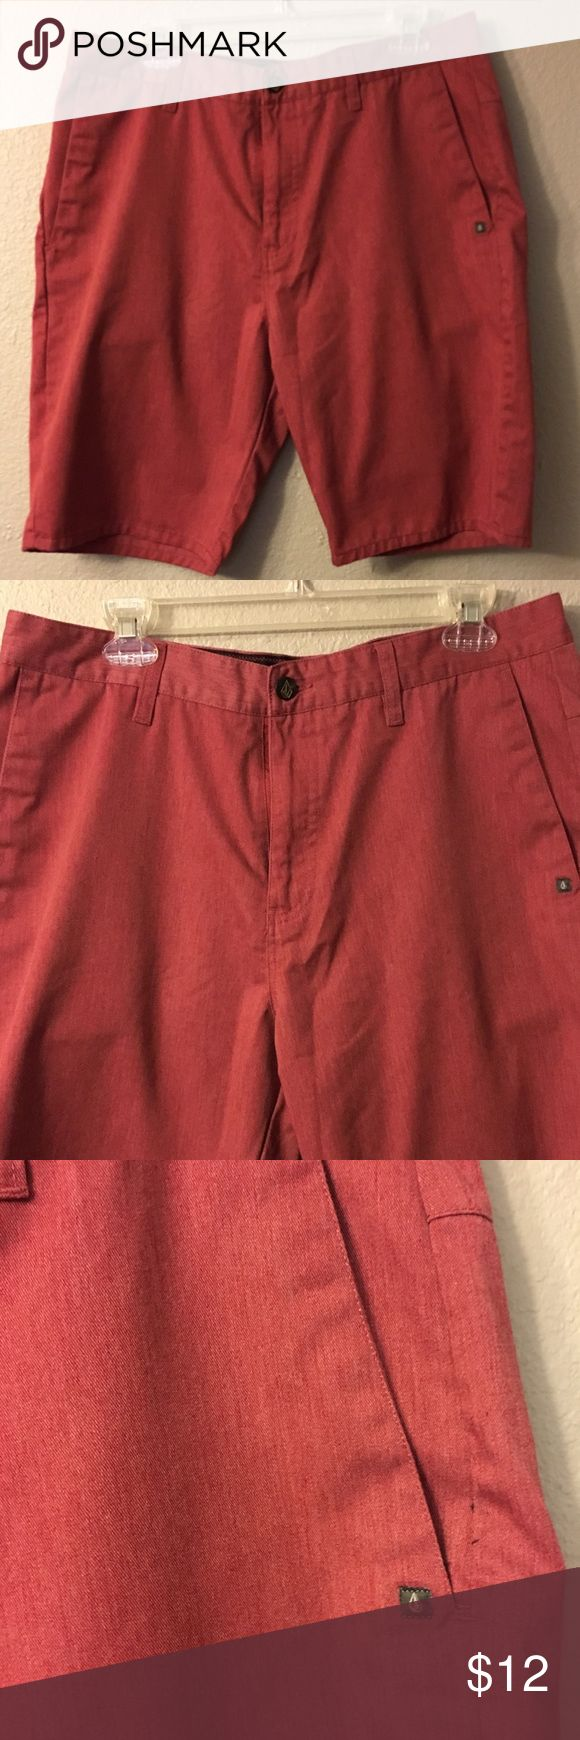 """Red Volcom Shorts EUC! Red men's Volcom Shorts that have only been worn once. The color is a bit muted and not obnoxious. Unique logo on back leg and unique detailing on pockets. Size 34 Inseam: 10"""" Volcom Shorts"""